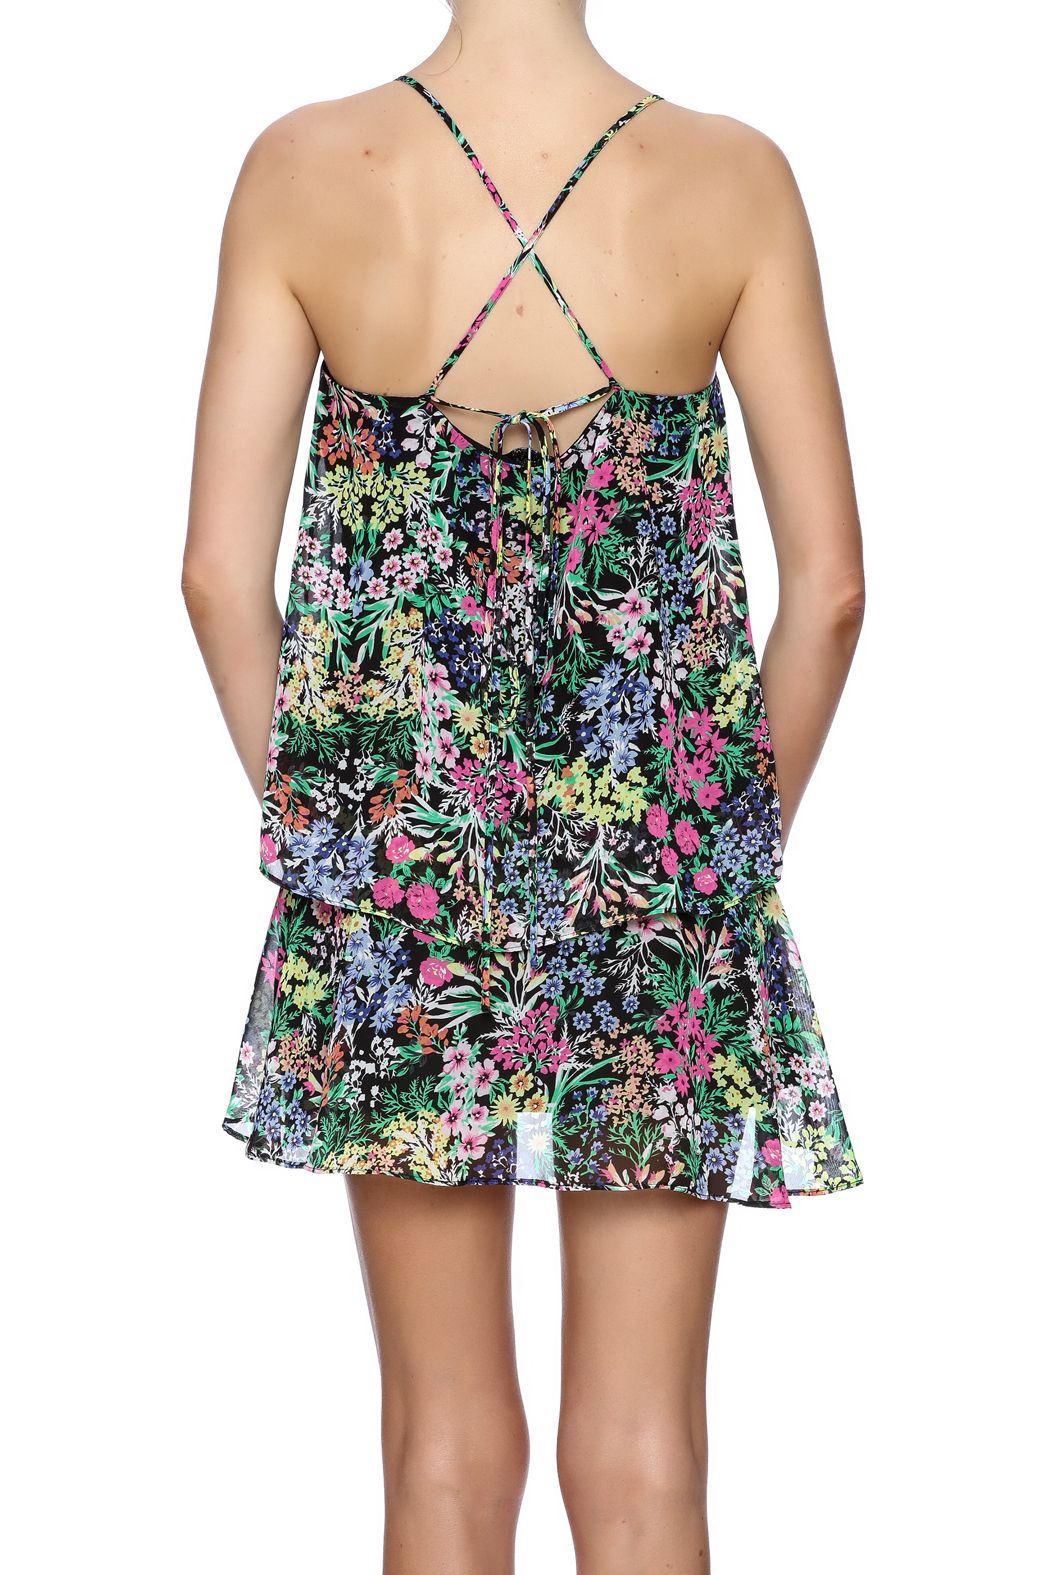 Yumi Kim Layer Up Dress - Back Cropped Image